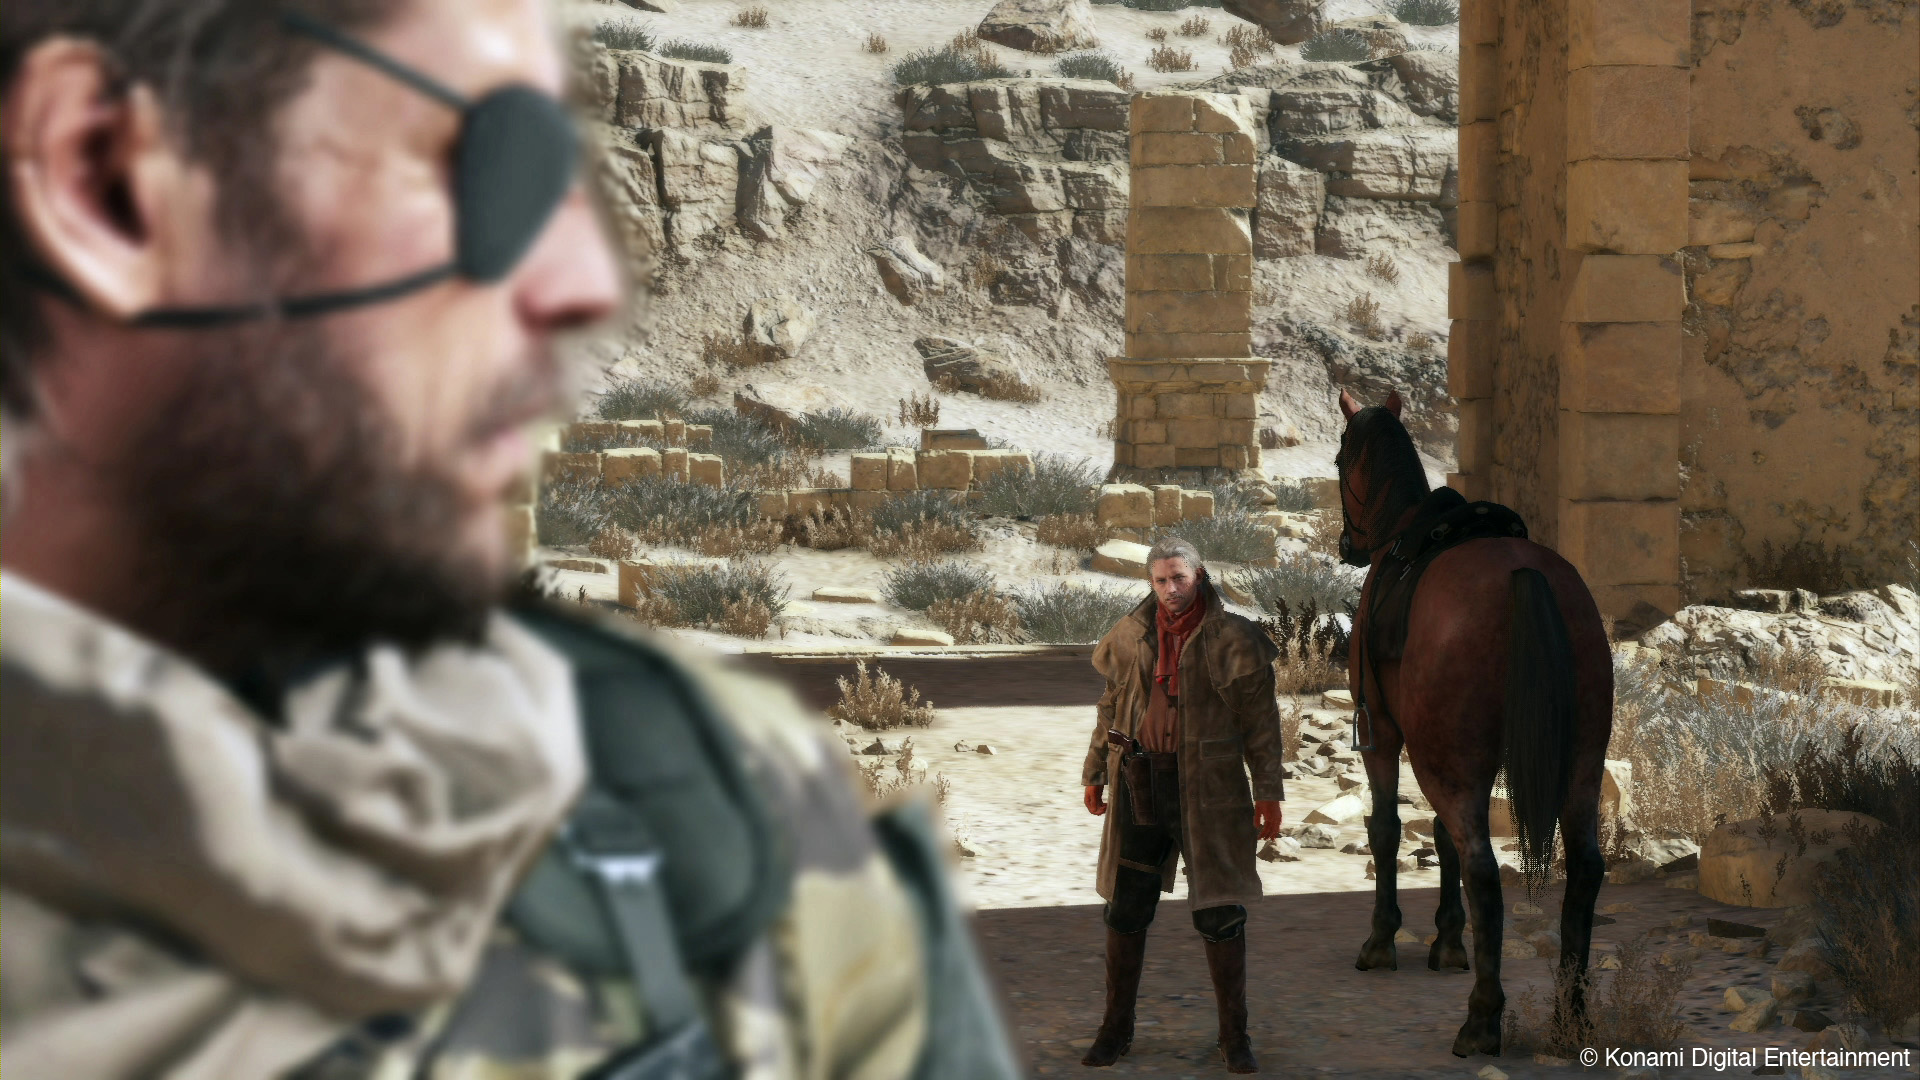 Metal Gear Solid V: The Phantom Pain pic